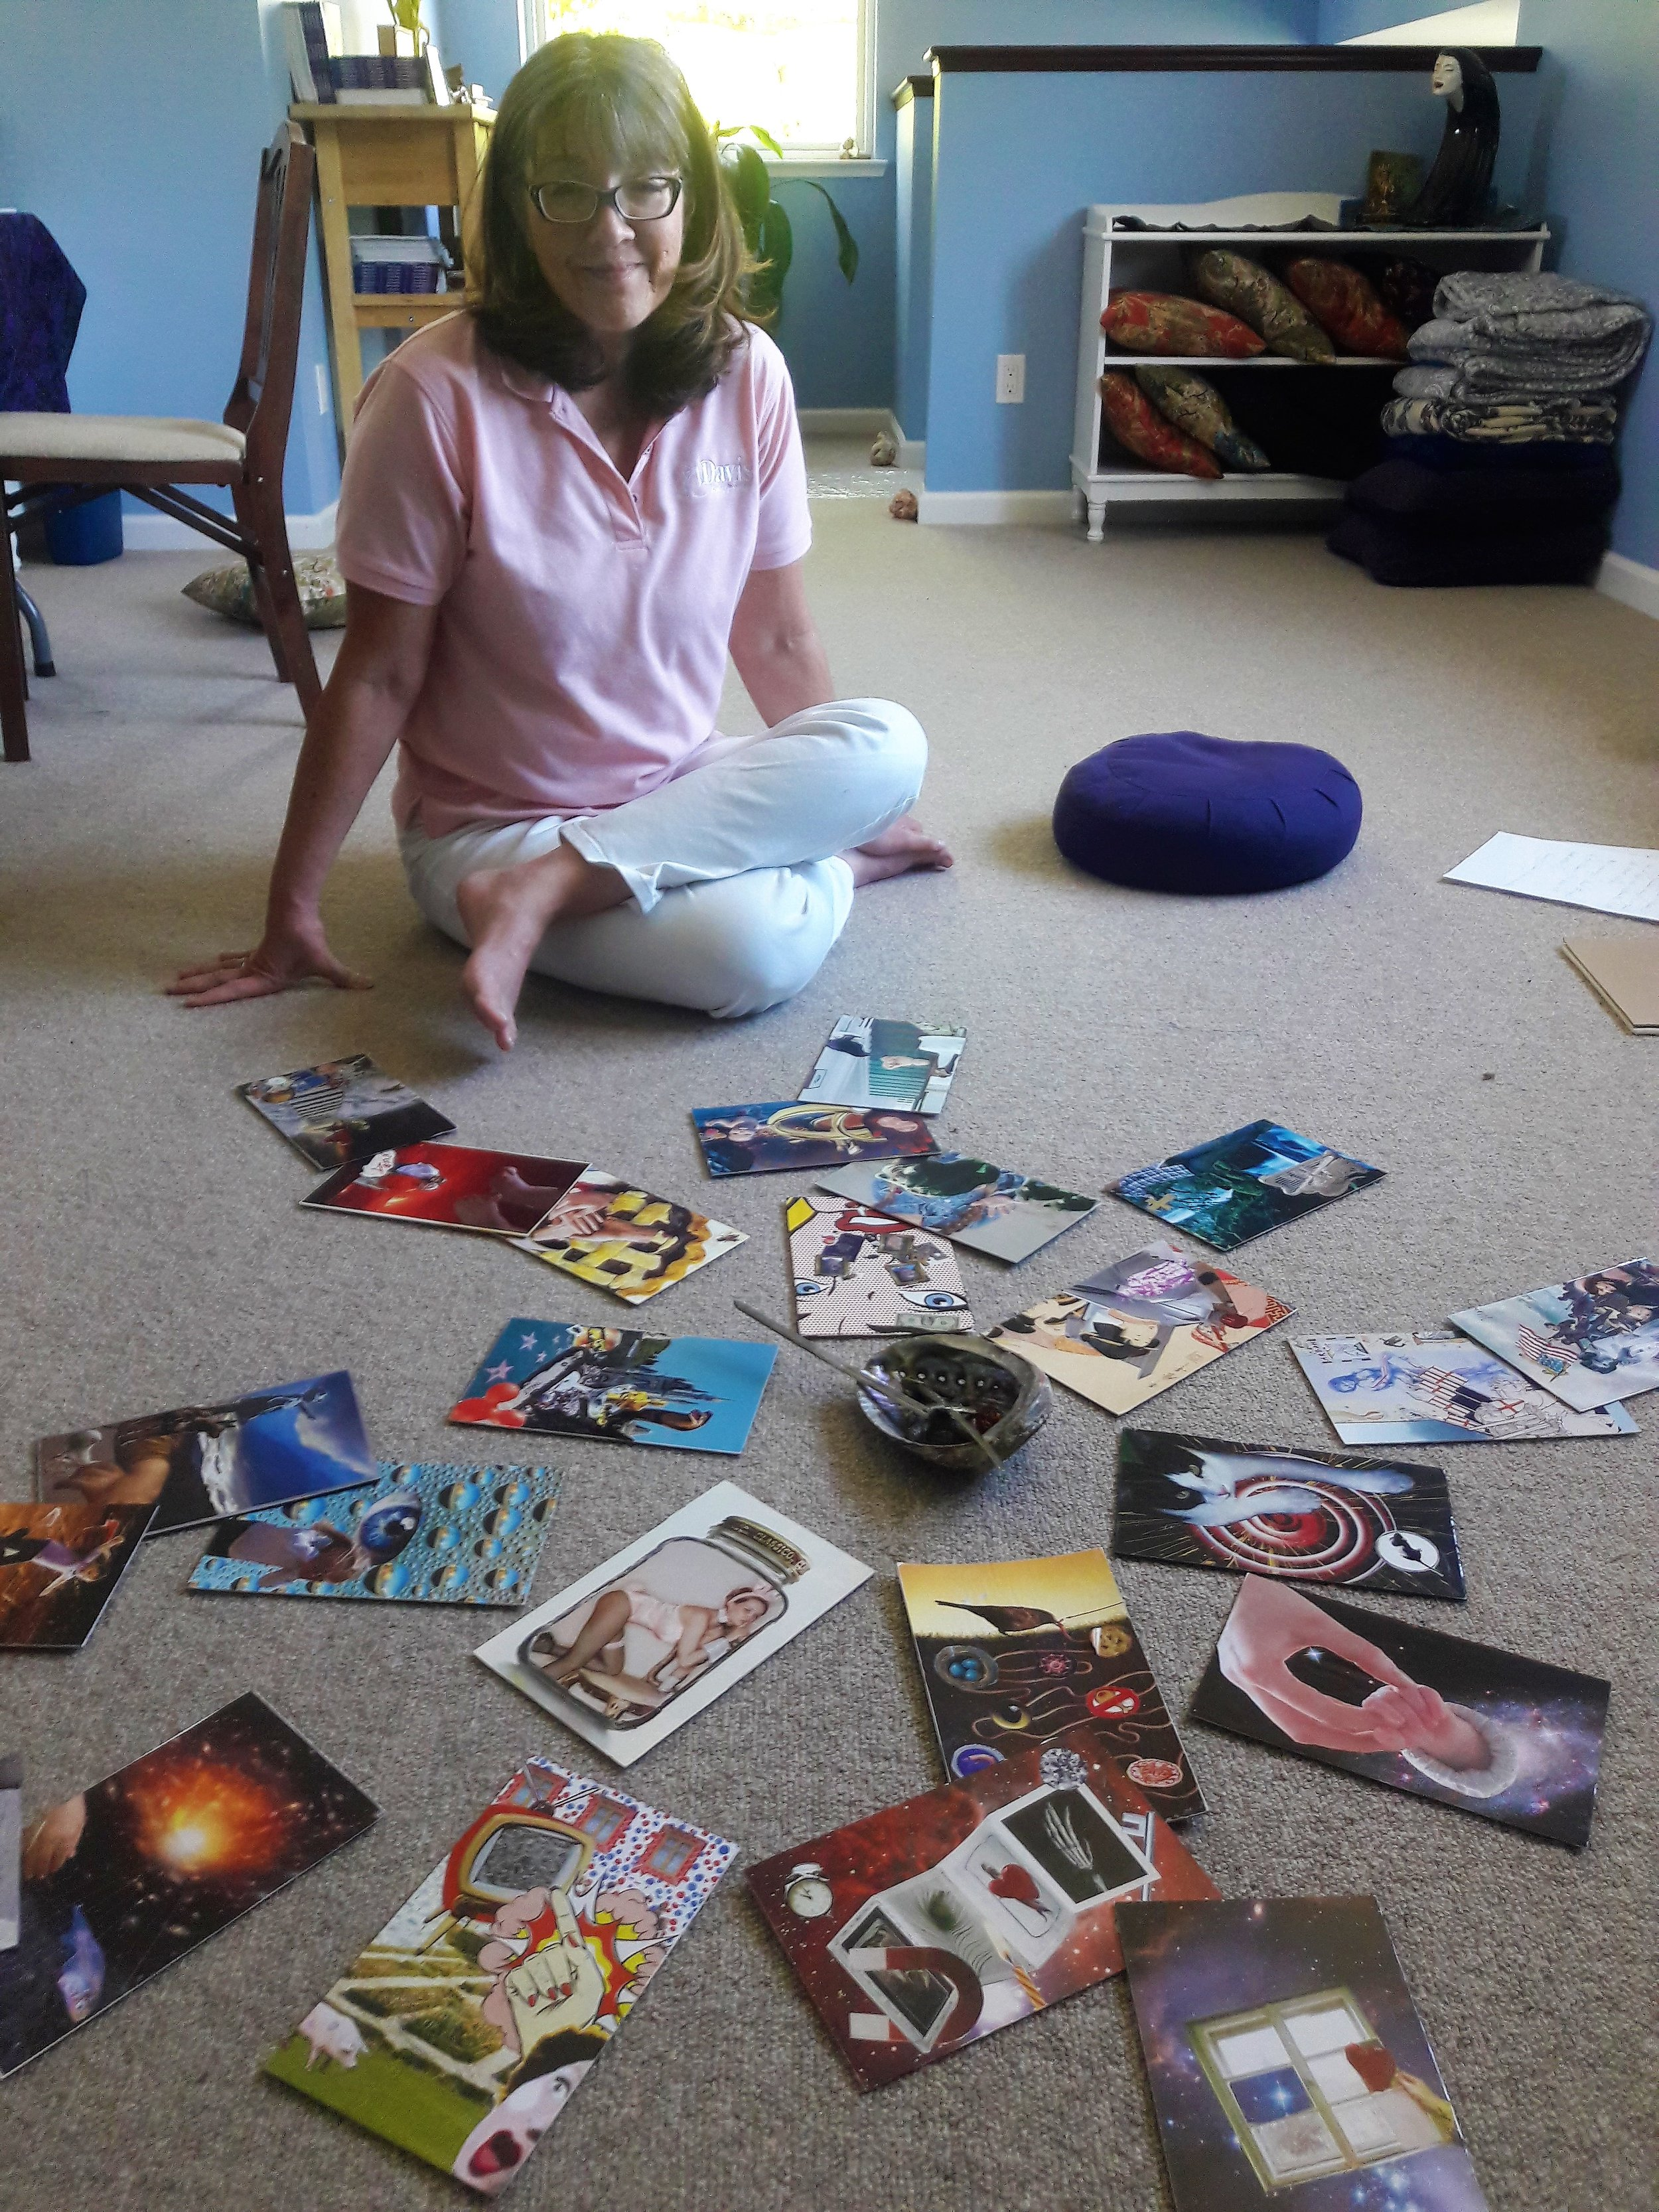 Laying out the story of a SoulCollage(R) deck